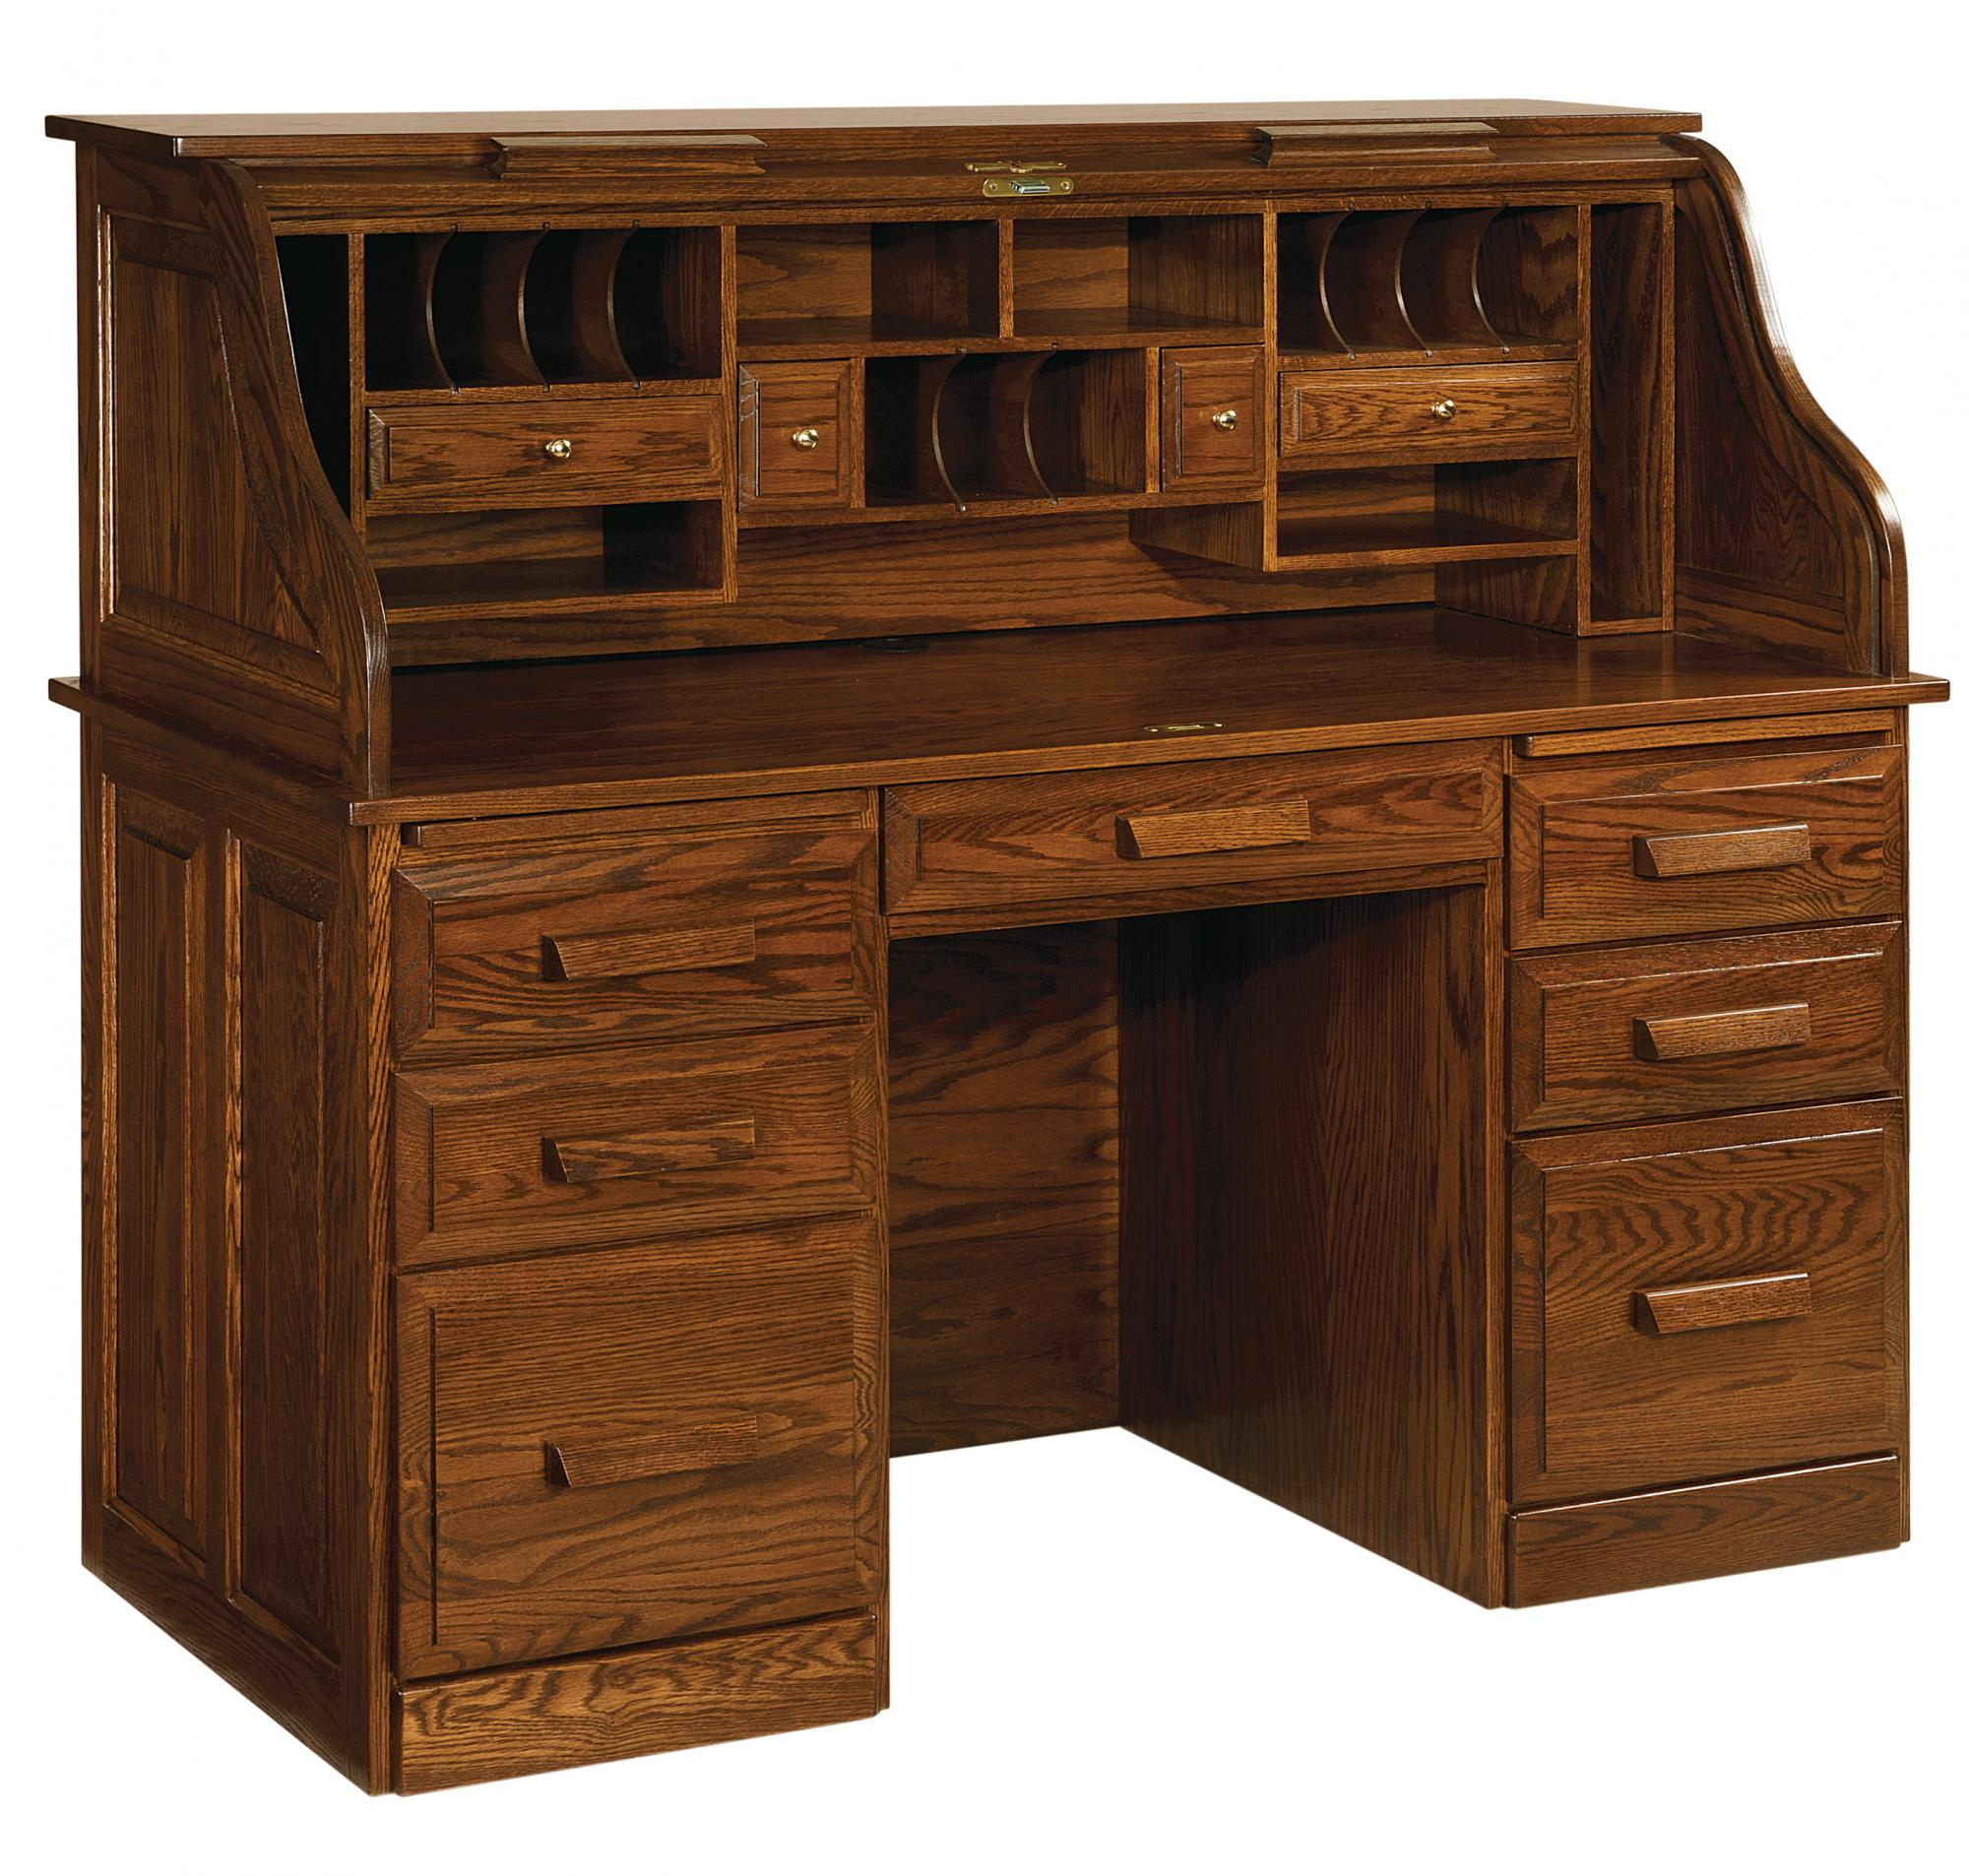 Classic Farmer S Roll Top Desk Amish Furniture Store